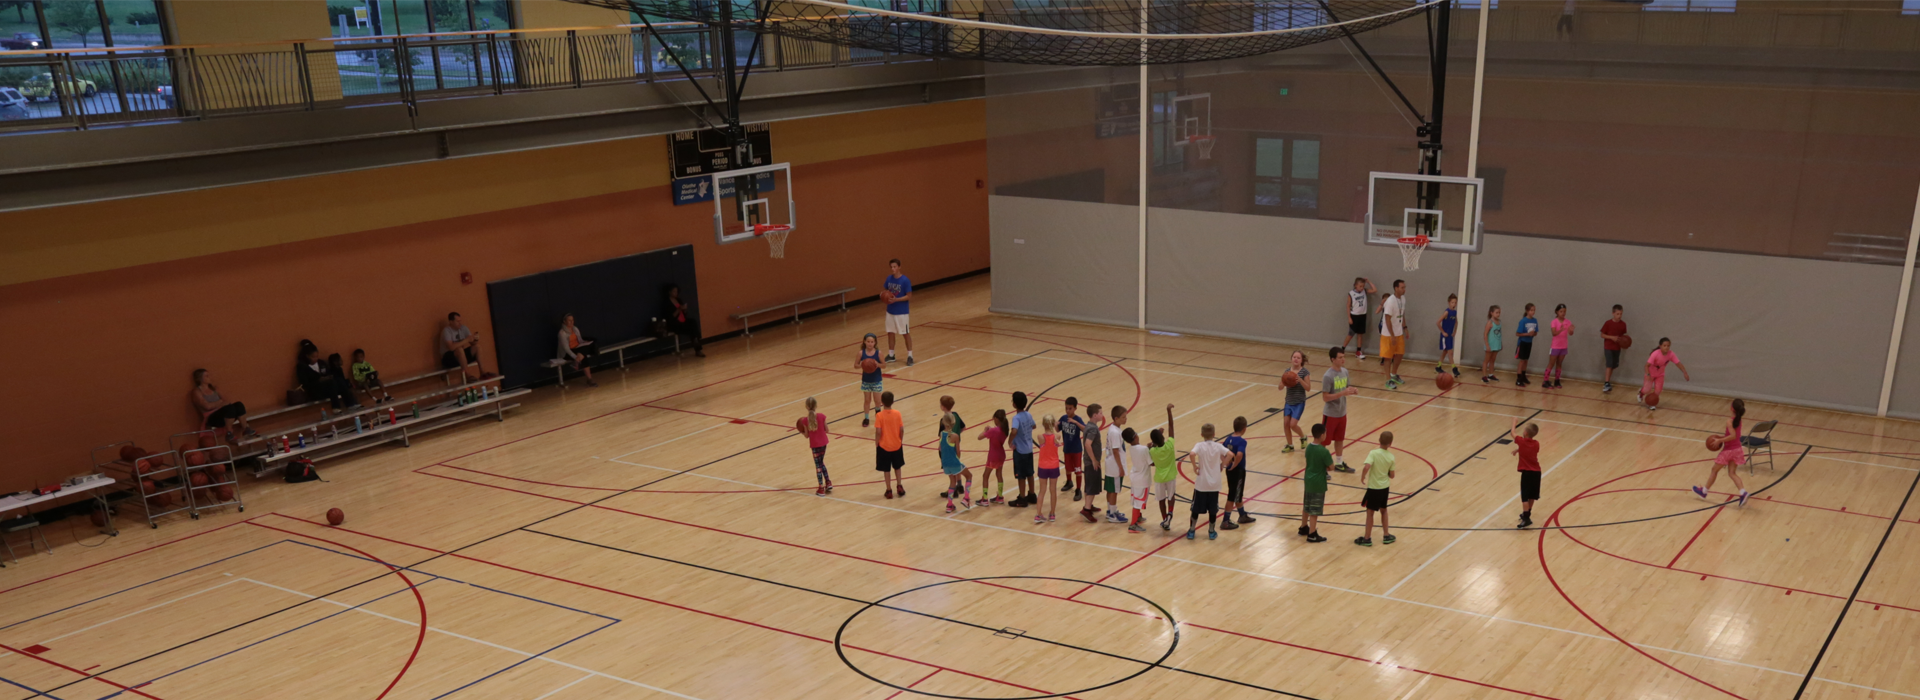 kids playing in community center gym